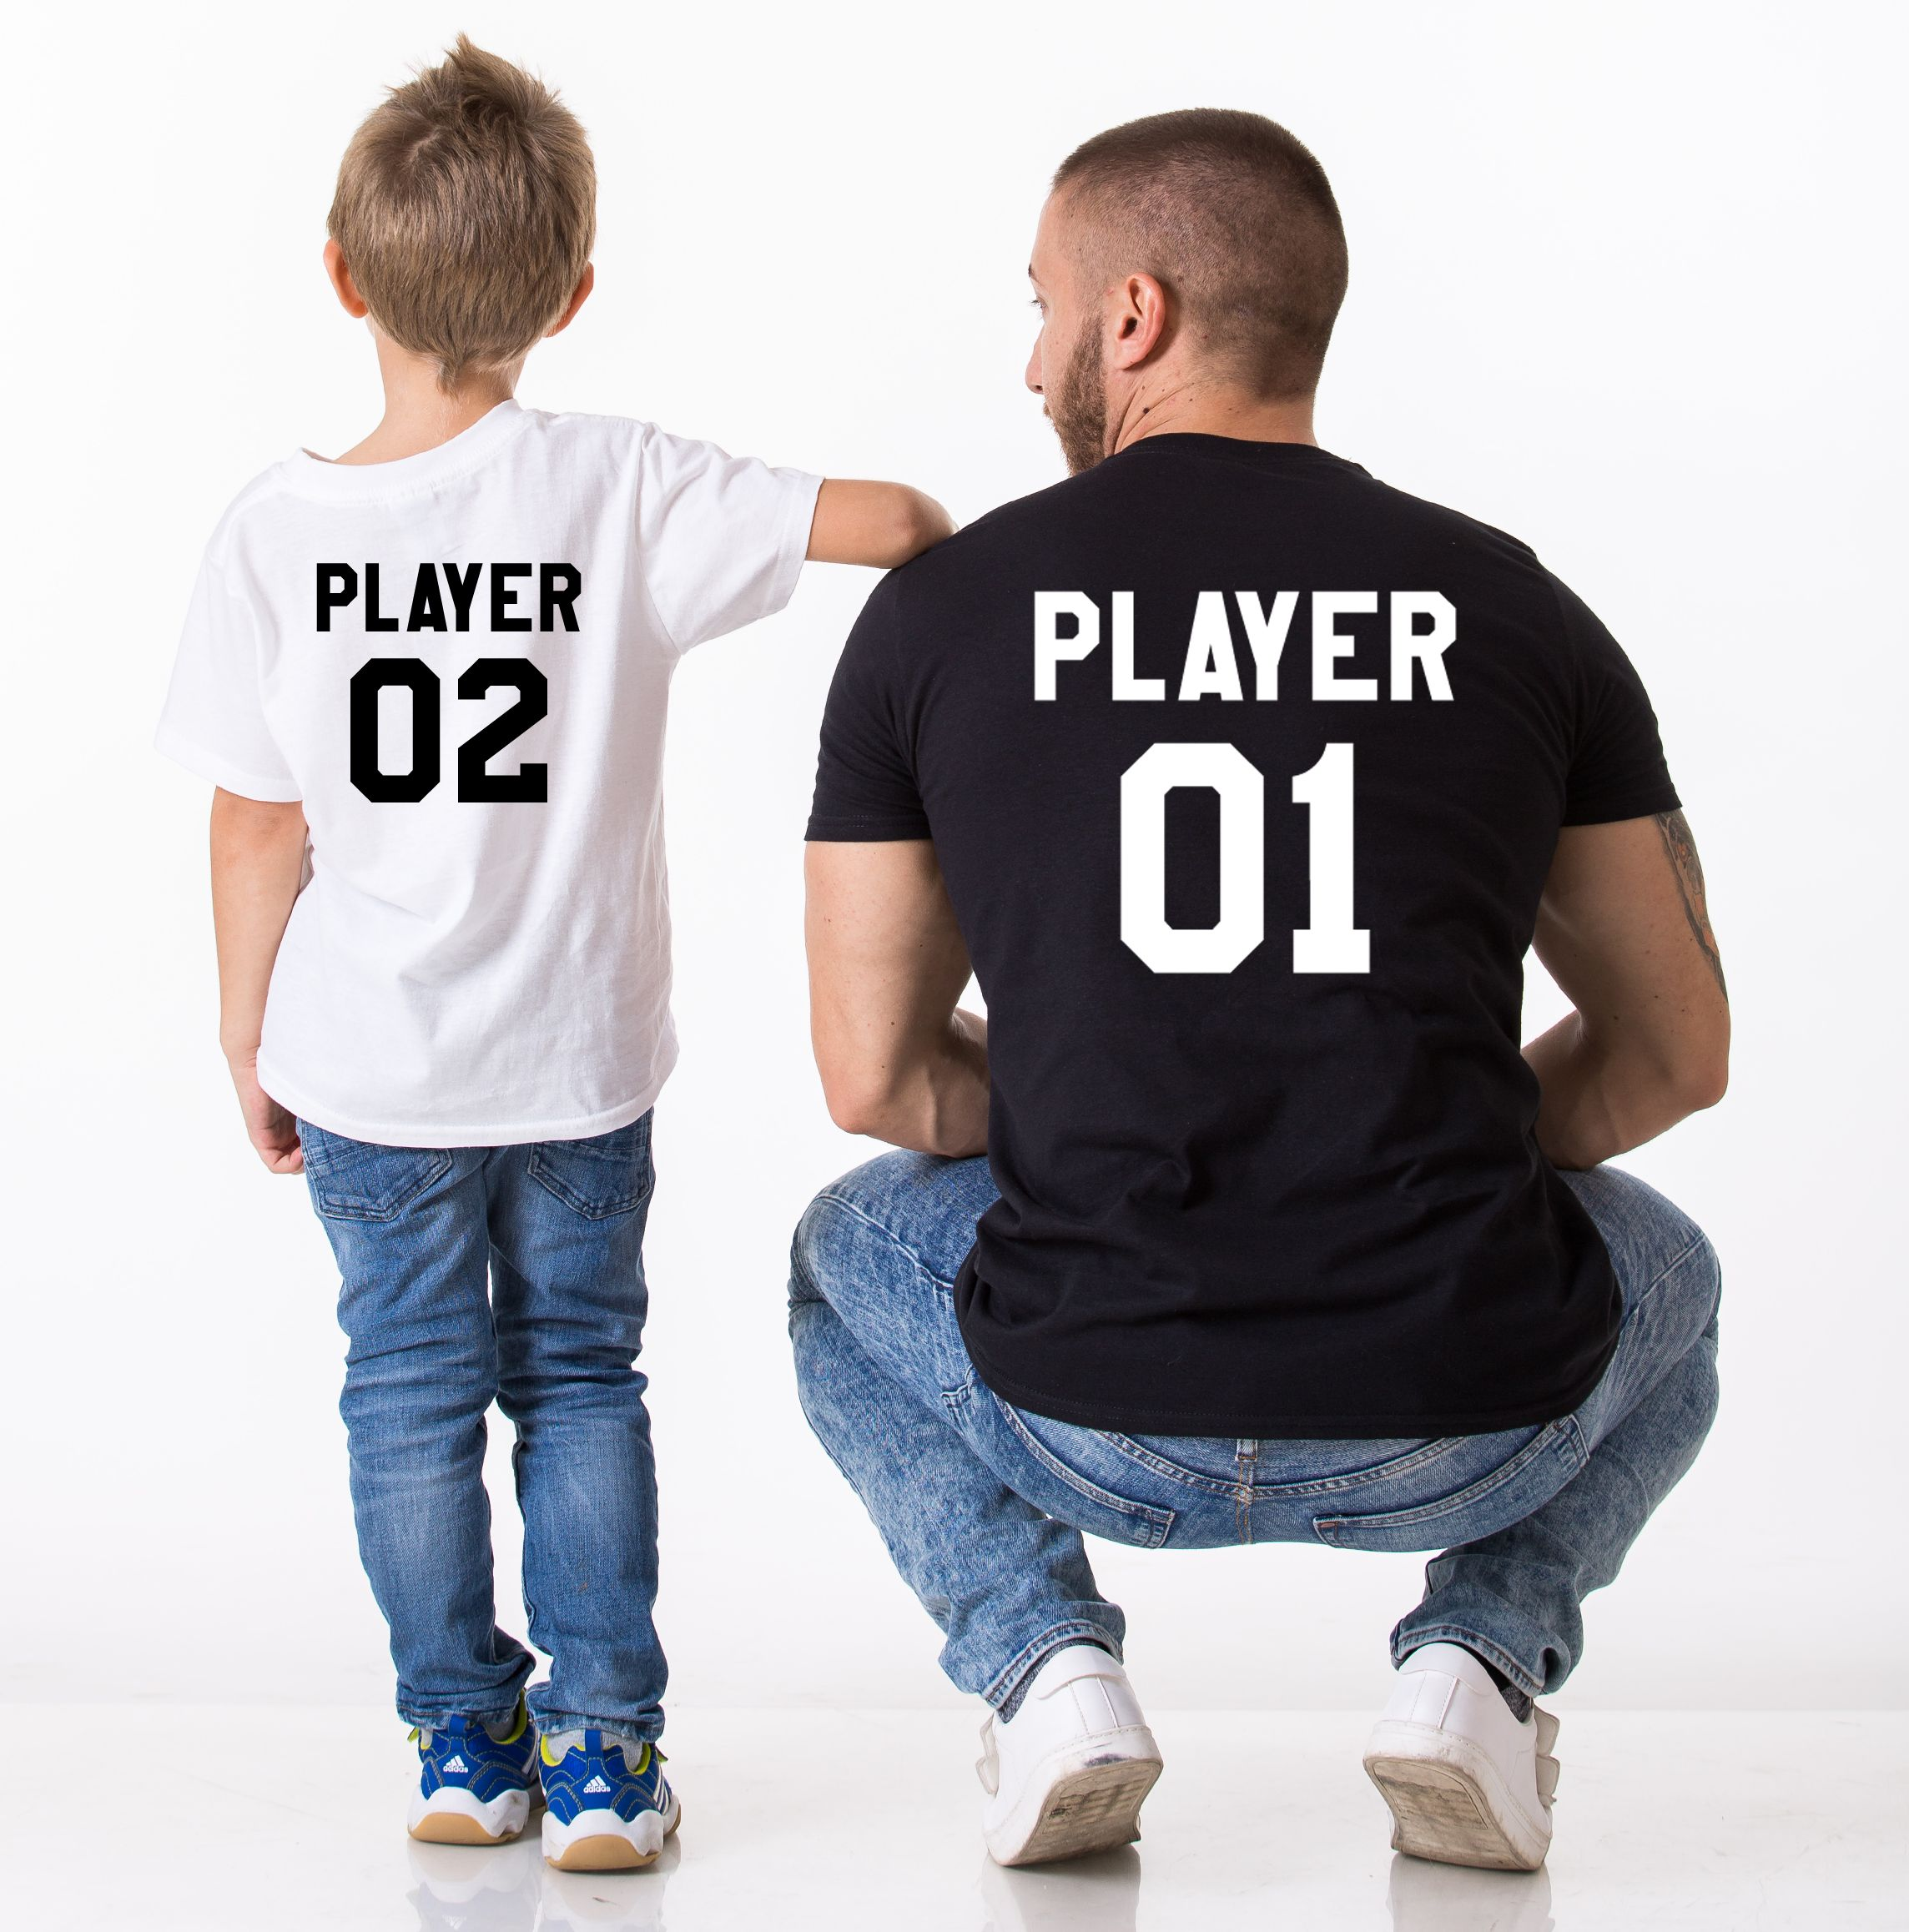 father son shirt player 01 player 02 matching daddy and